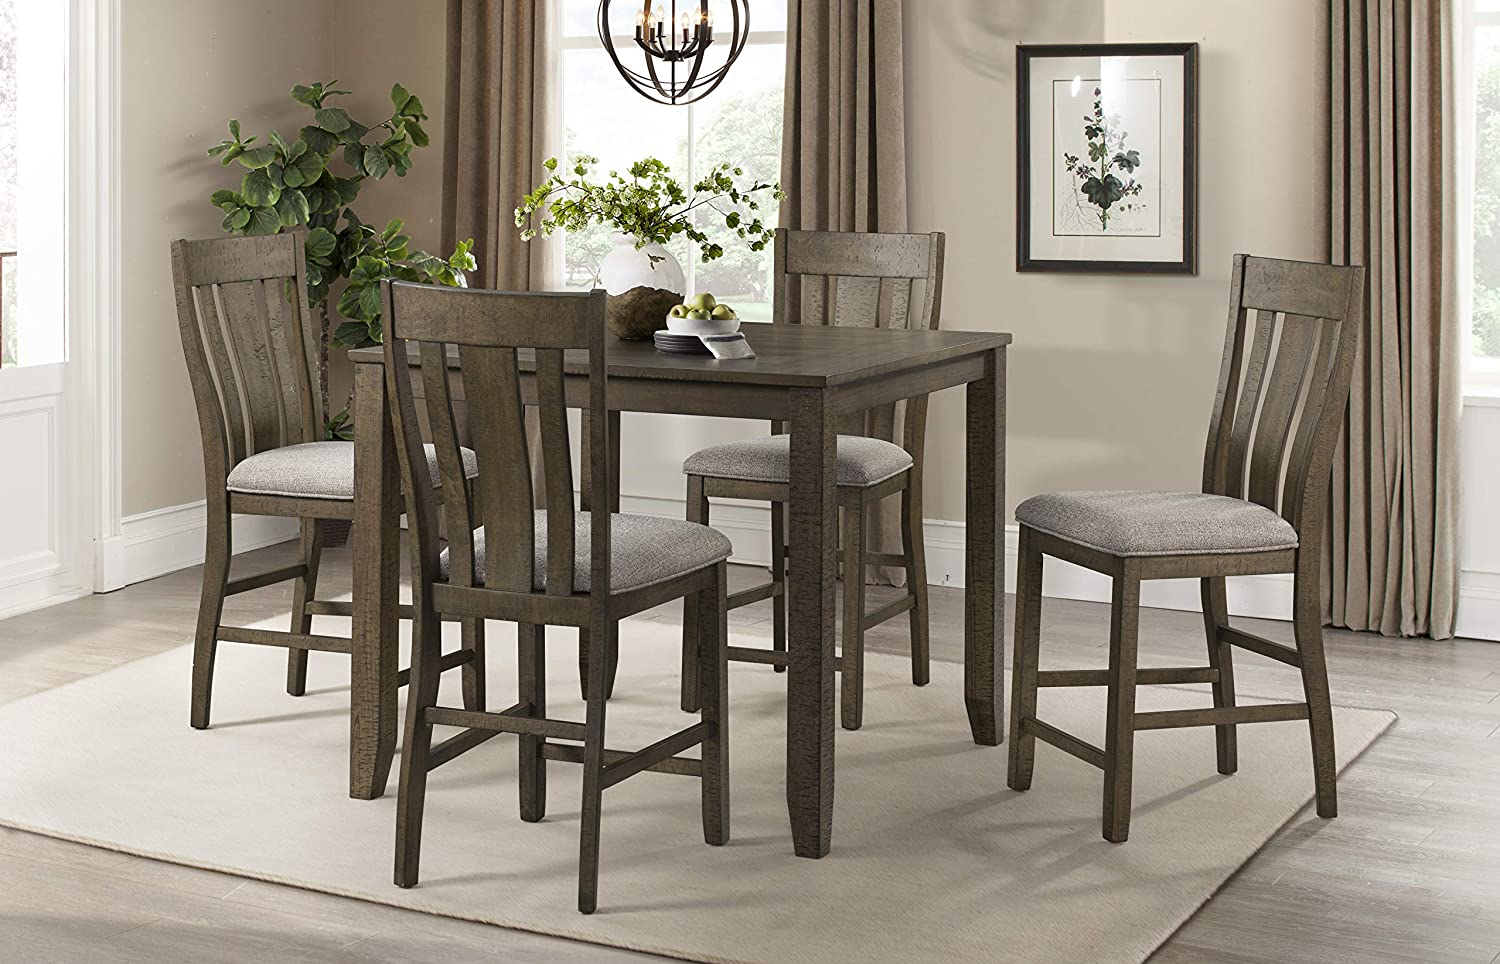 Lane Home Furnishings 5 Pc Counter Height Dining Set Brown Table Chair Sets Amazon Com